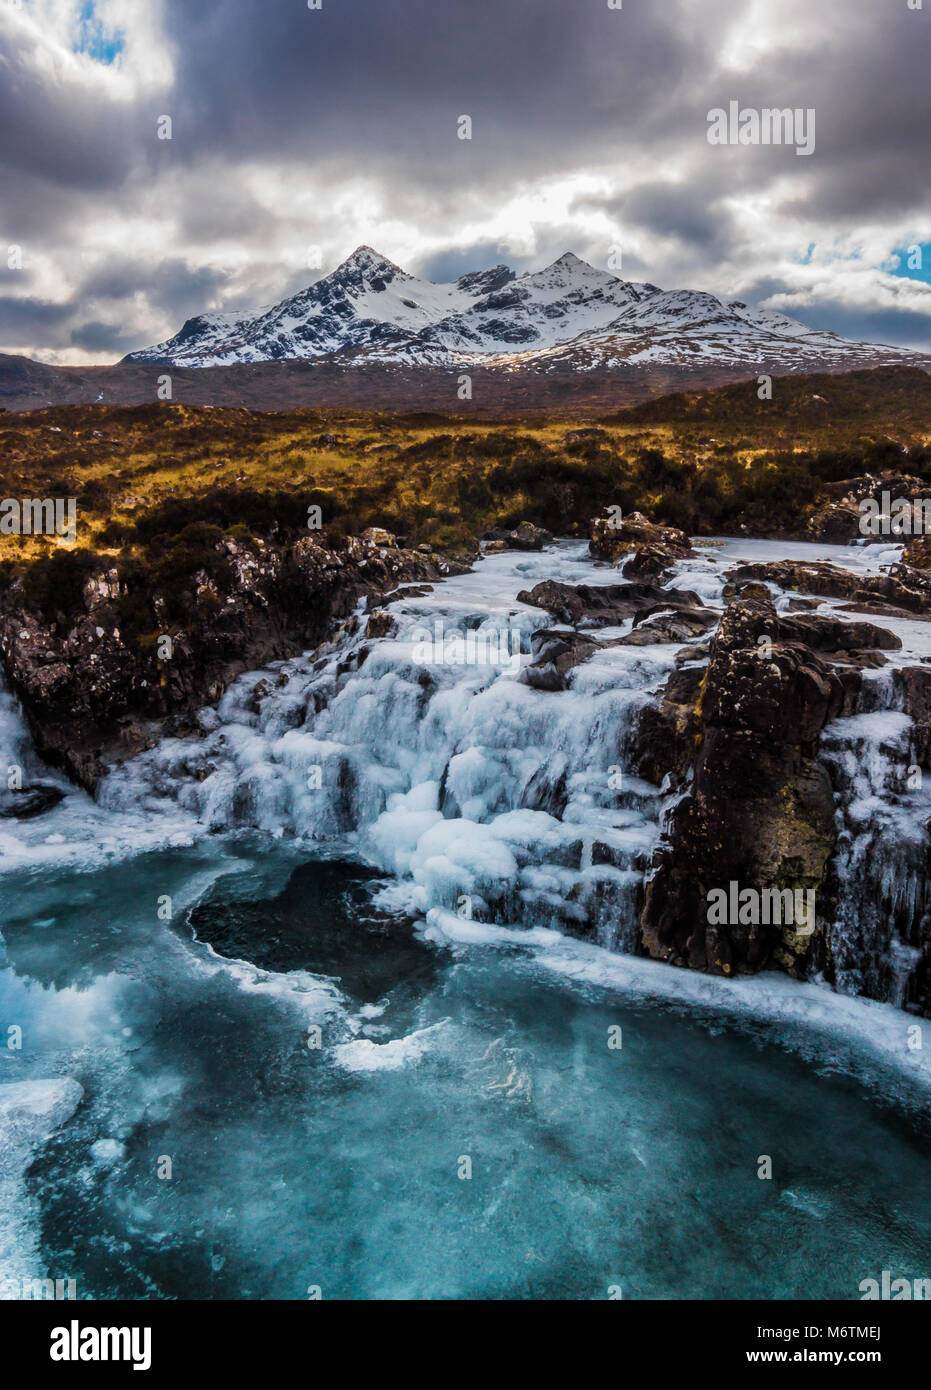 Frozen Waterfall, Allt Dearg, Cuillin Mountains - Stock Image